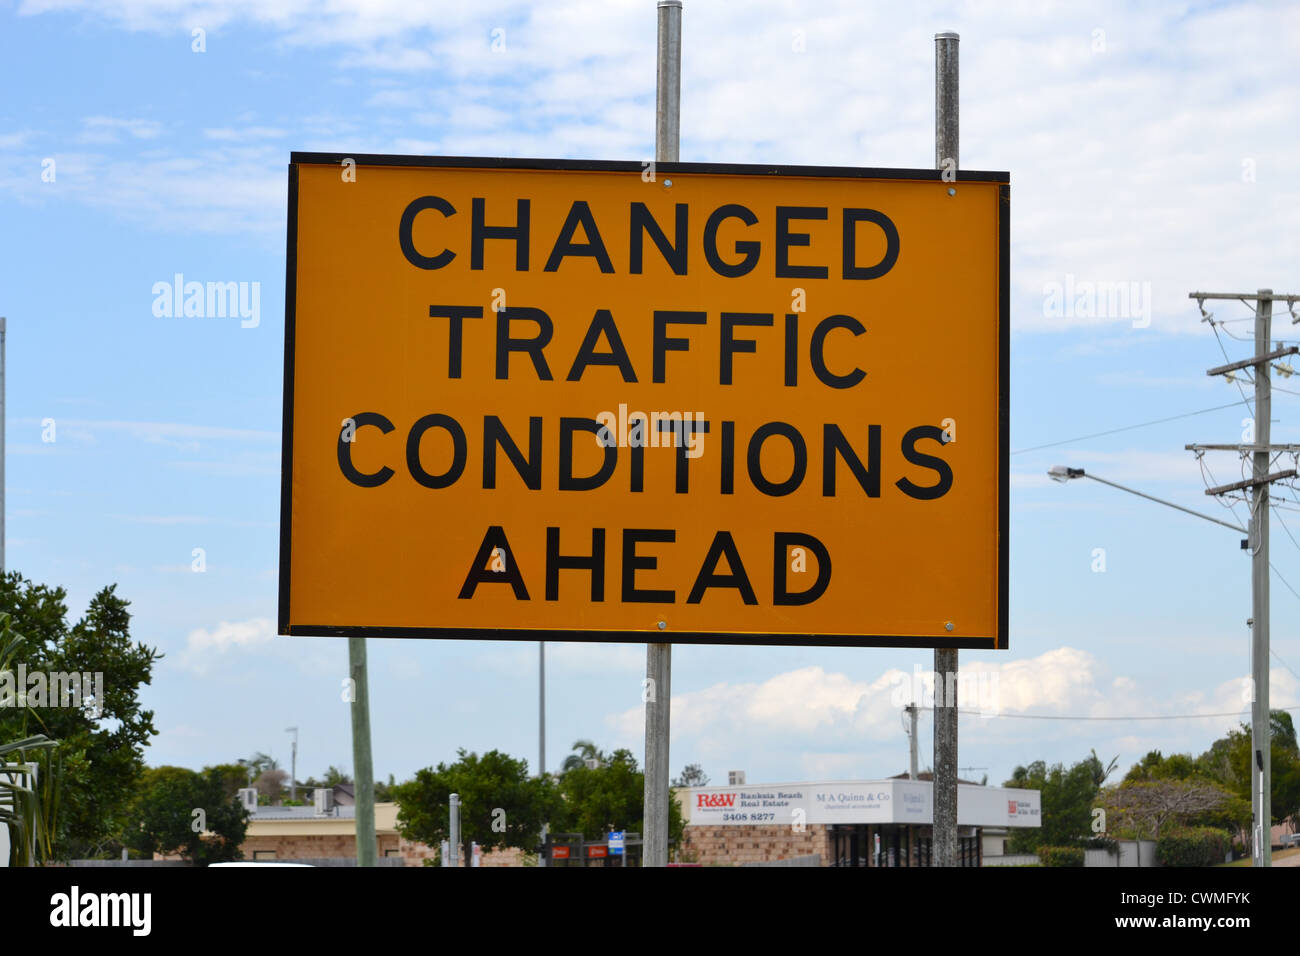 changed traffic conditions ahead sign - Stock Image